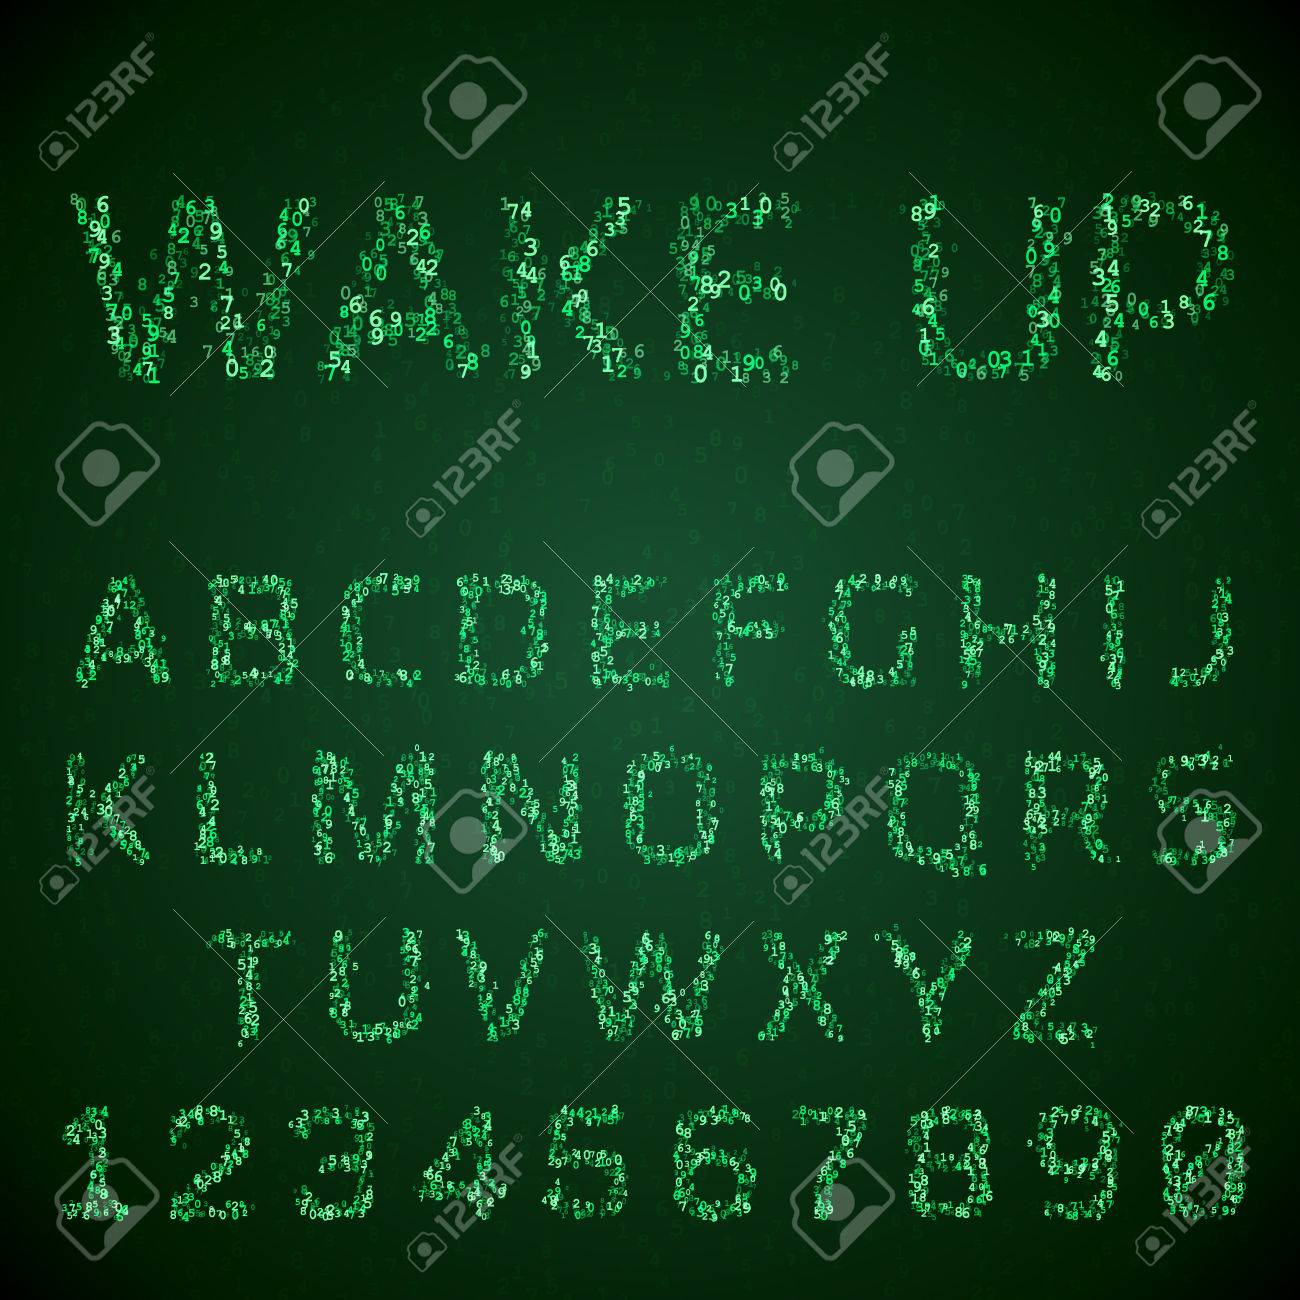 font made of digital numbers  Glowing green symbols hacker style